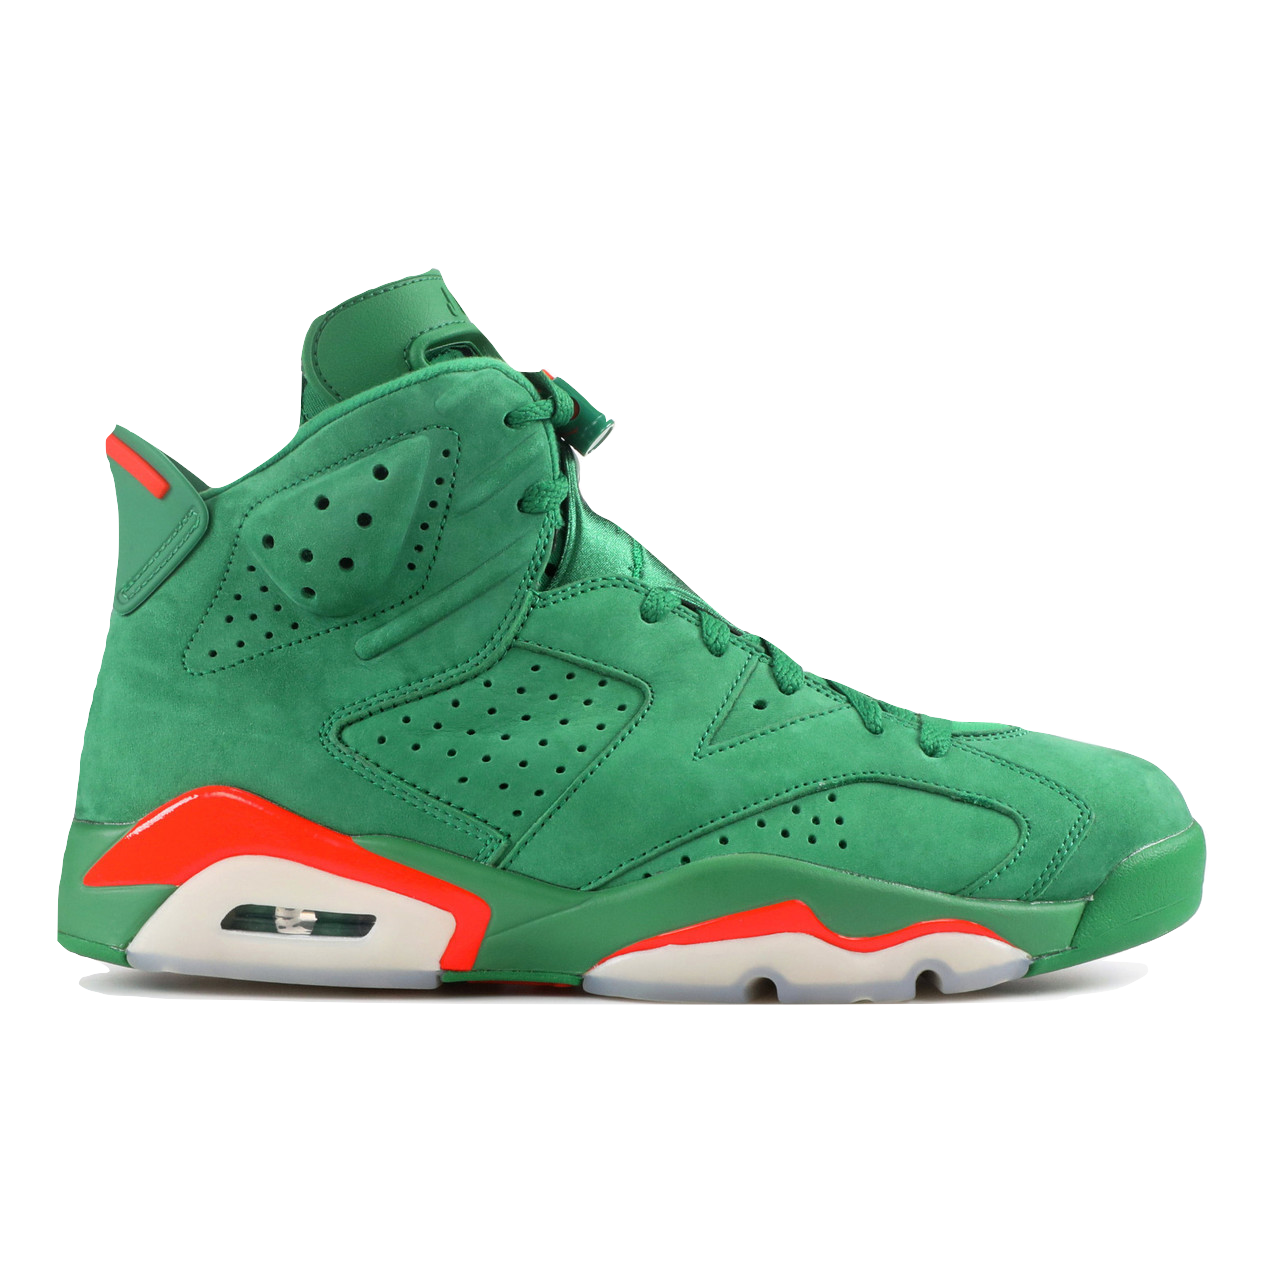 Air Jordan 6 Retro NRG G8RD - Green